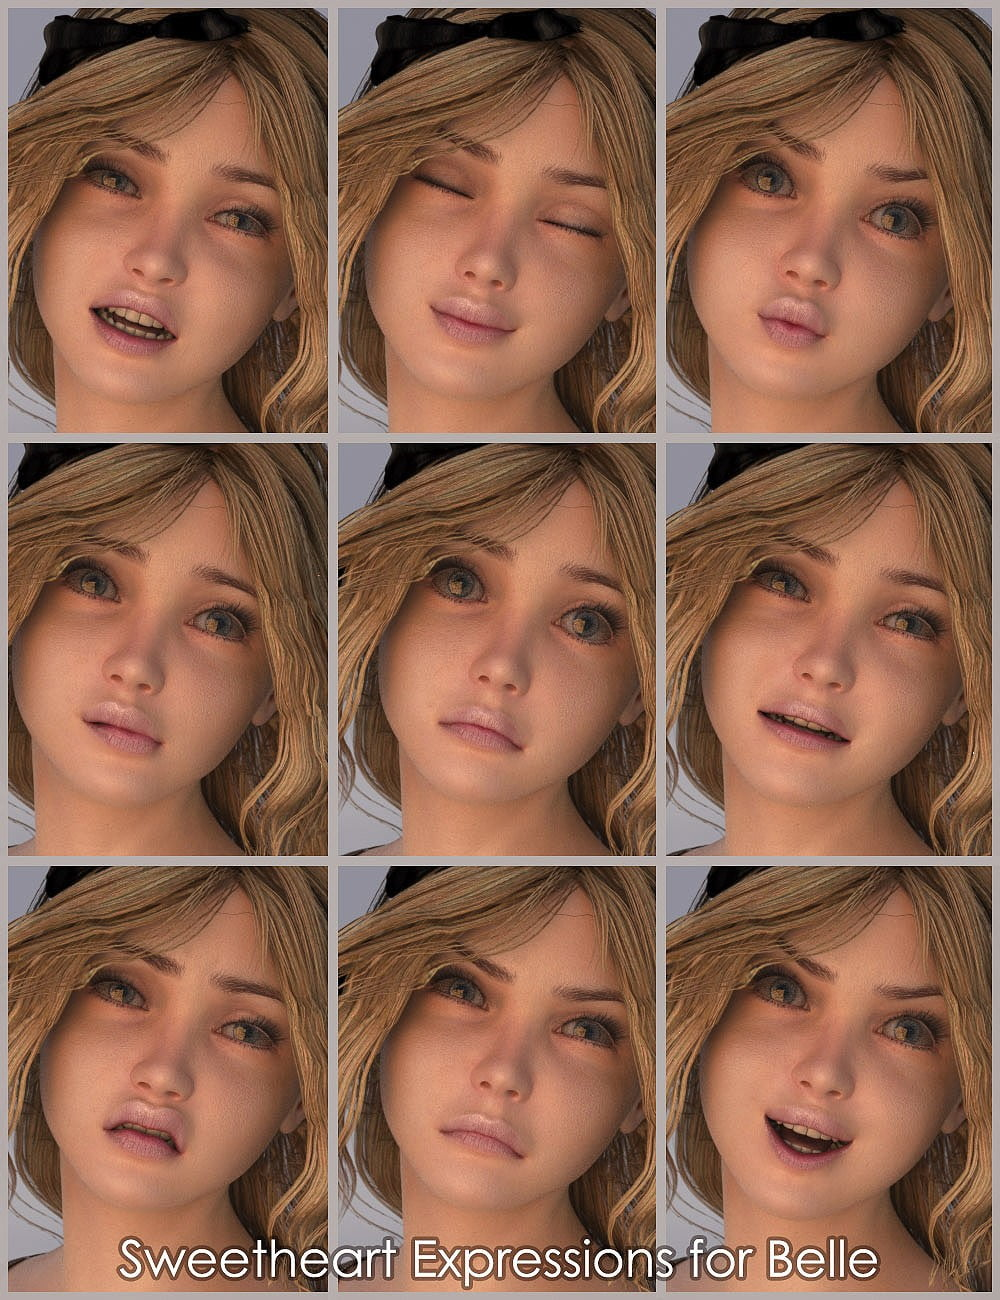 04-sweetheart-expressions-for-belle-6-daz3d